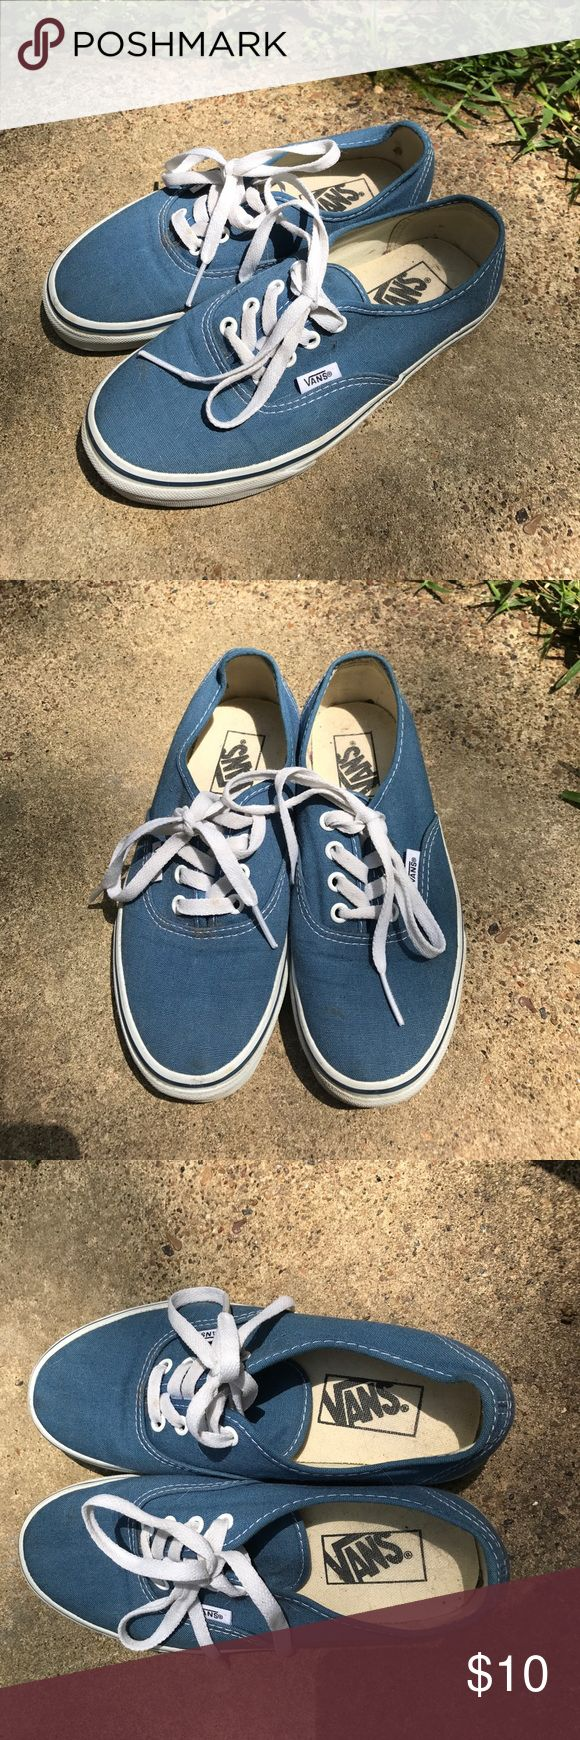 Light navy Vans Well loved pair of light navy blue vans. They do have a bit of dirt and dog hair from sitting in my closet for so long. However they don't have much wear on them. Vans Shoes